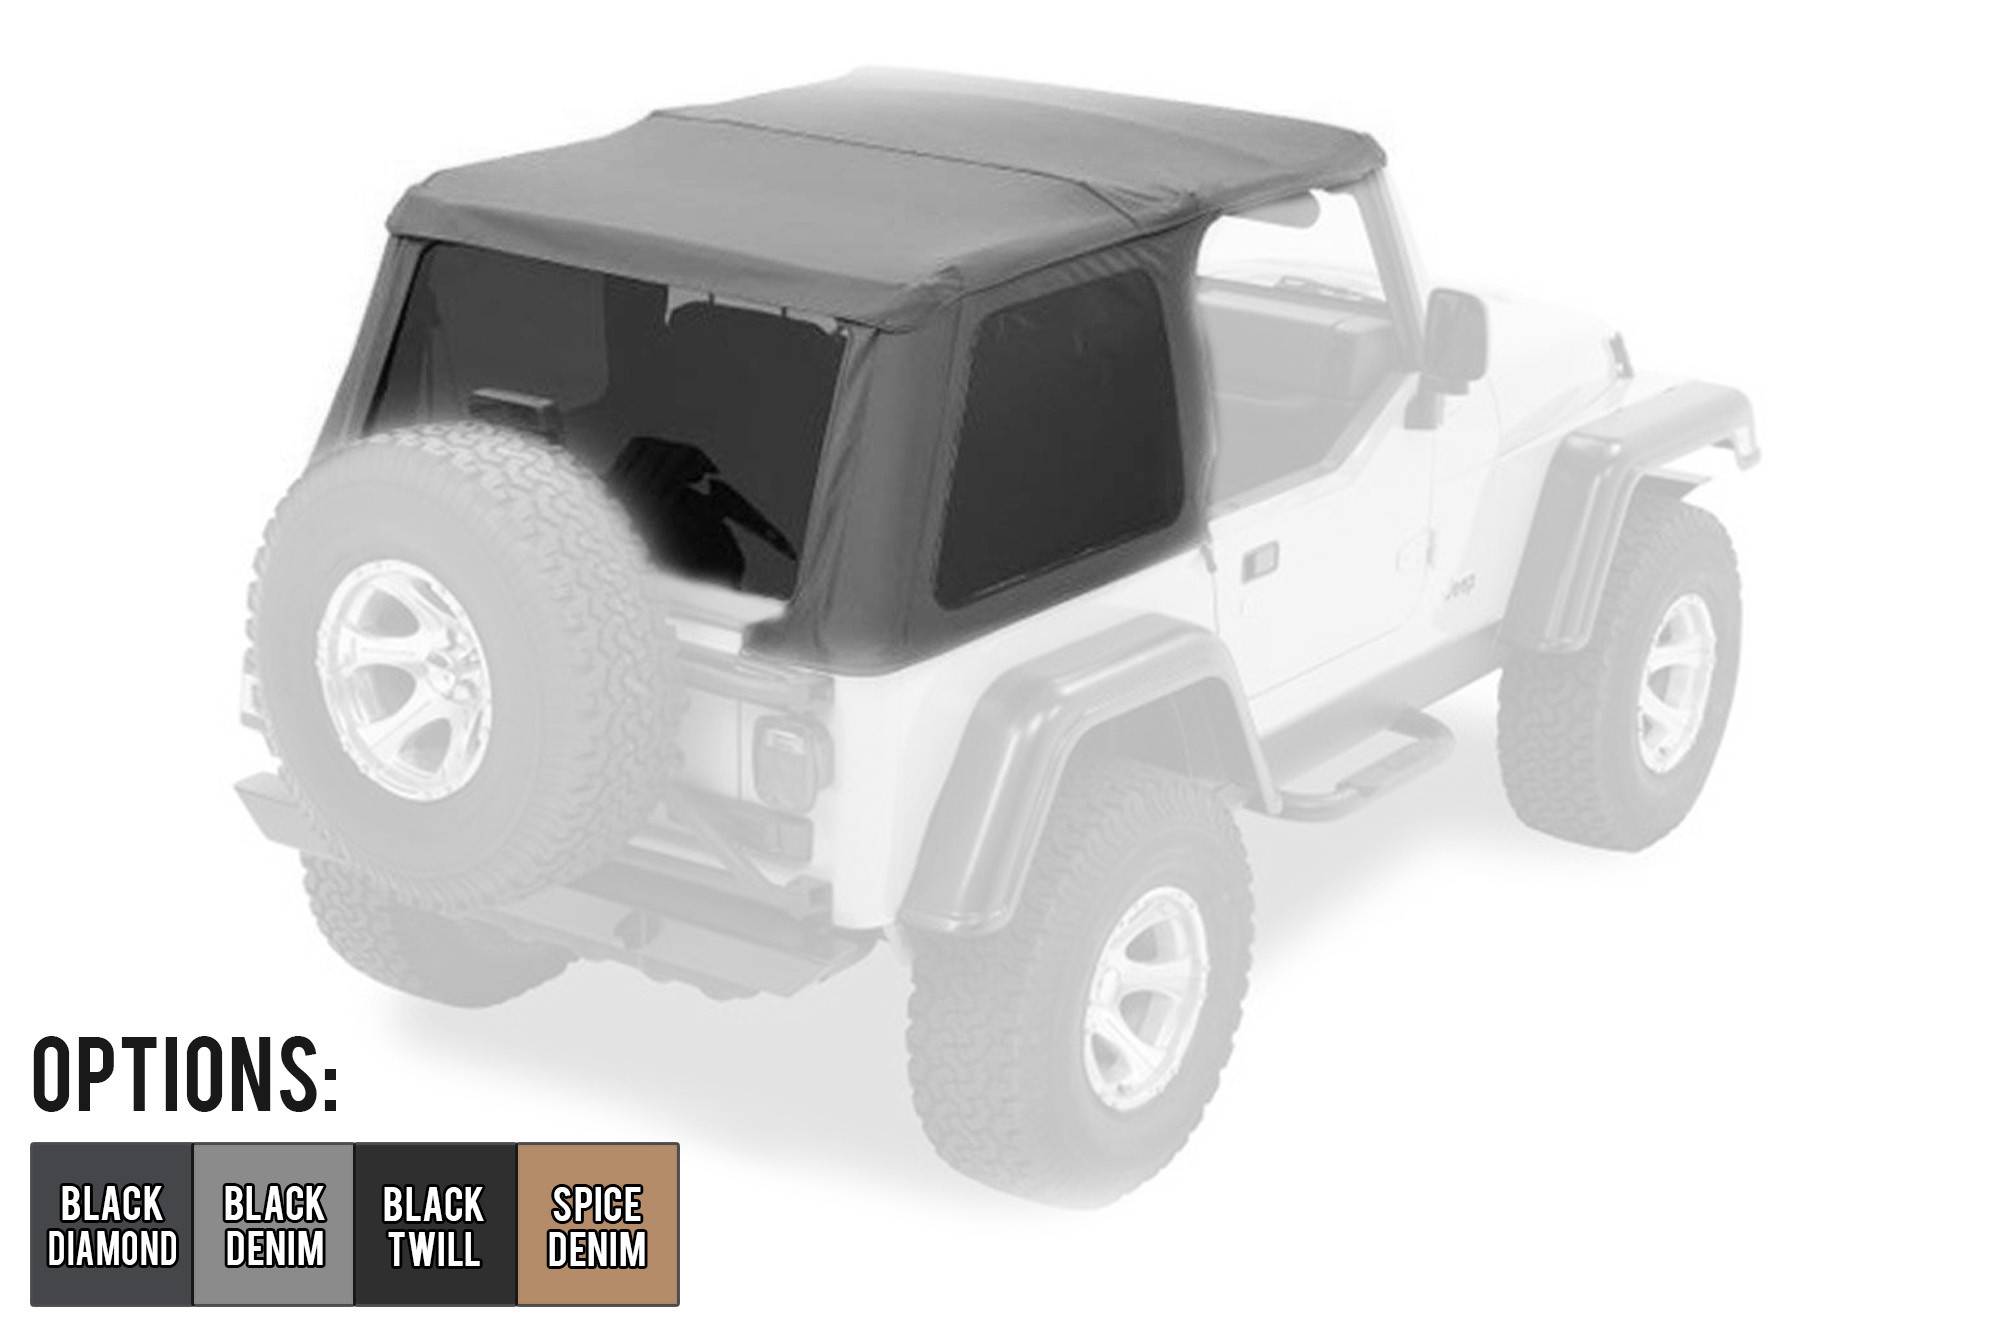 Bestop Trektop NX With Tinted Windows For 1997-06 Jeep Wrangler TJ Models